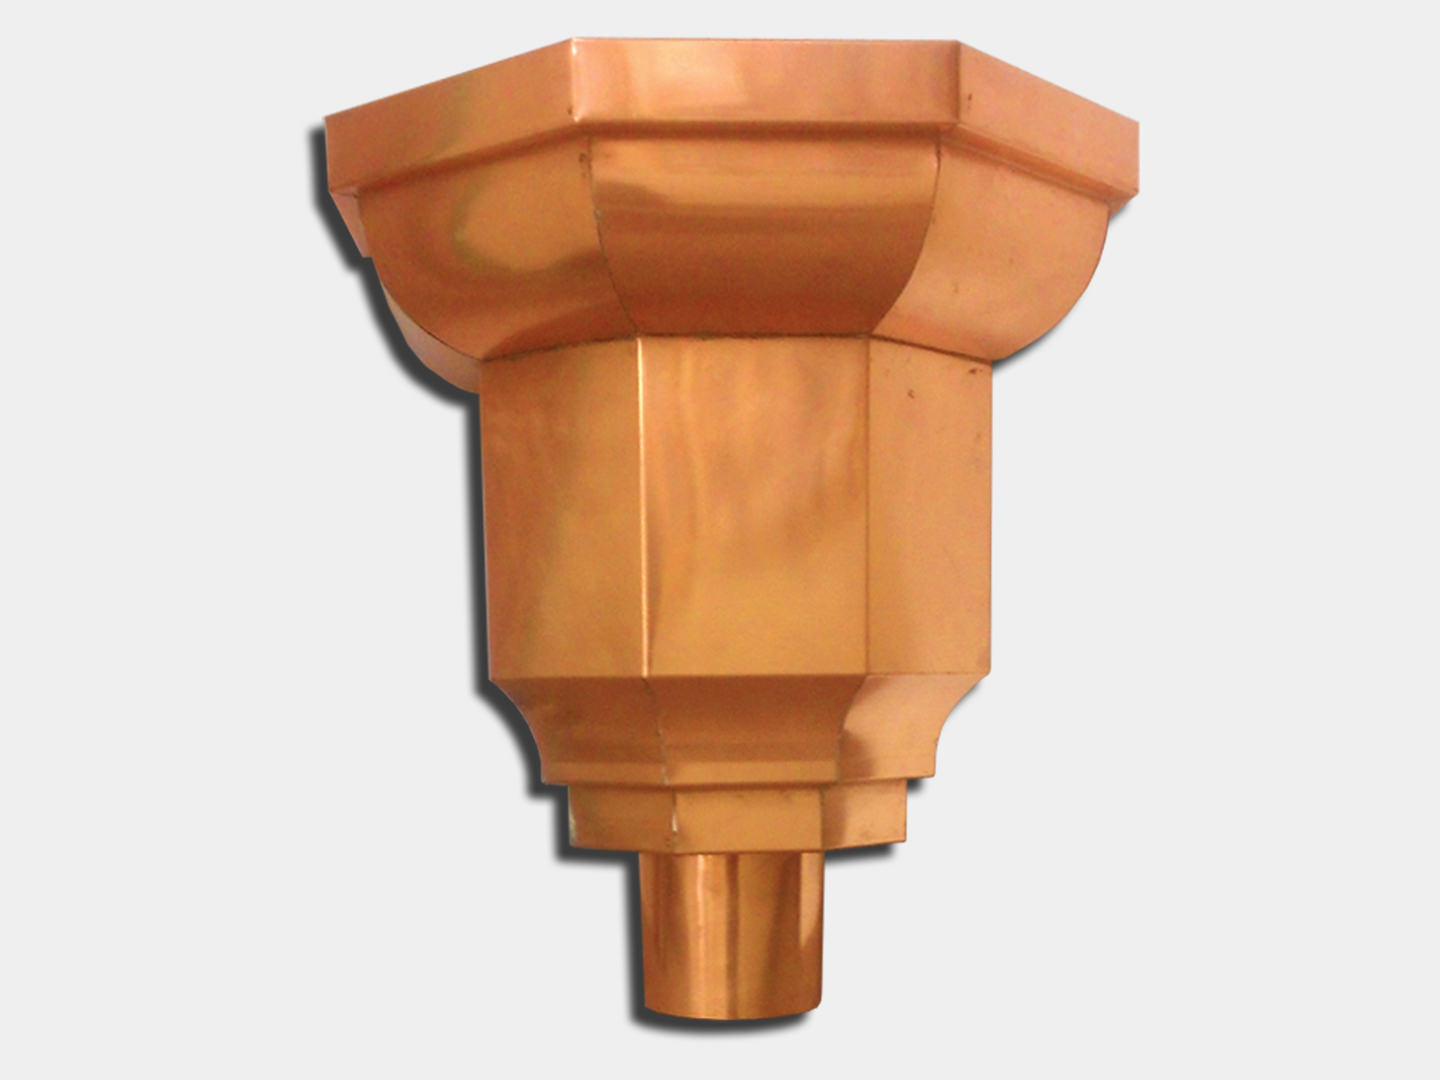 Traditional: The Regal Copper Conductor Head / Leader Head